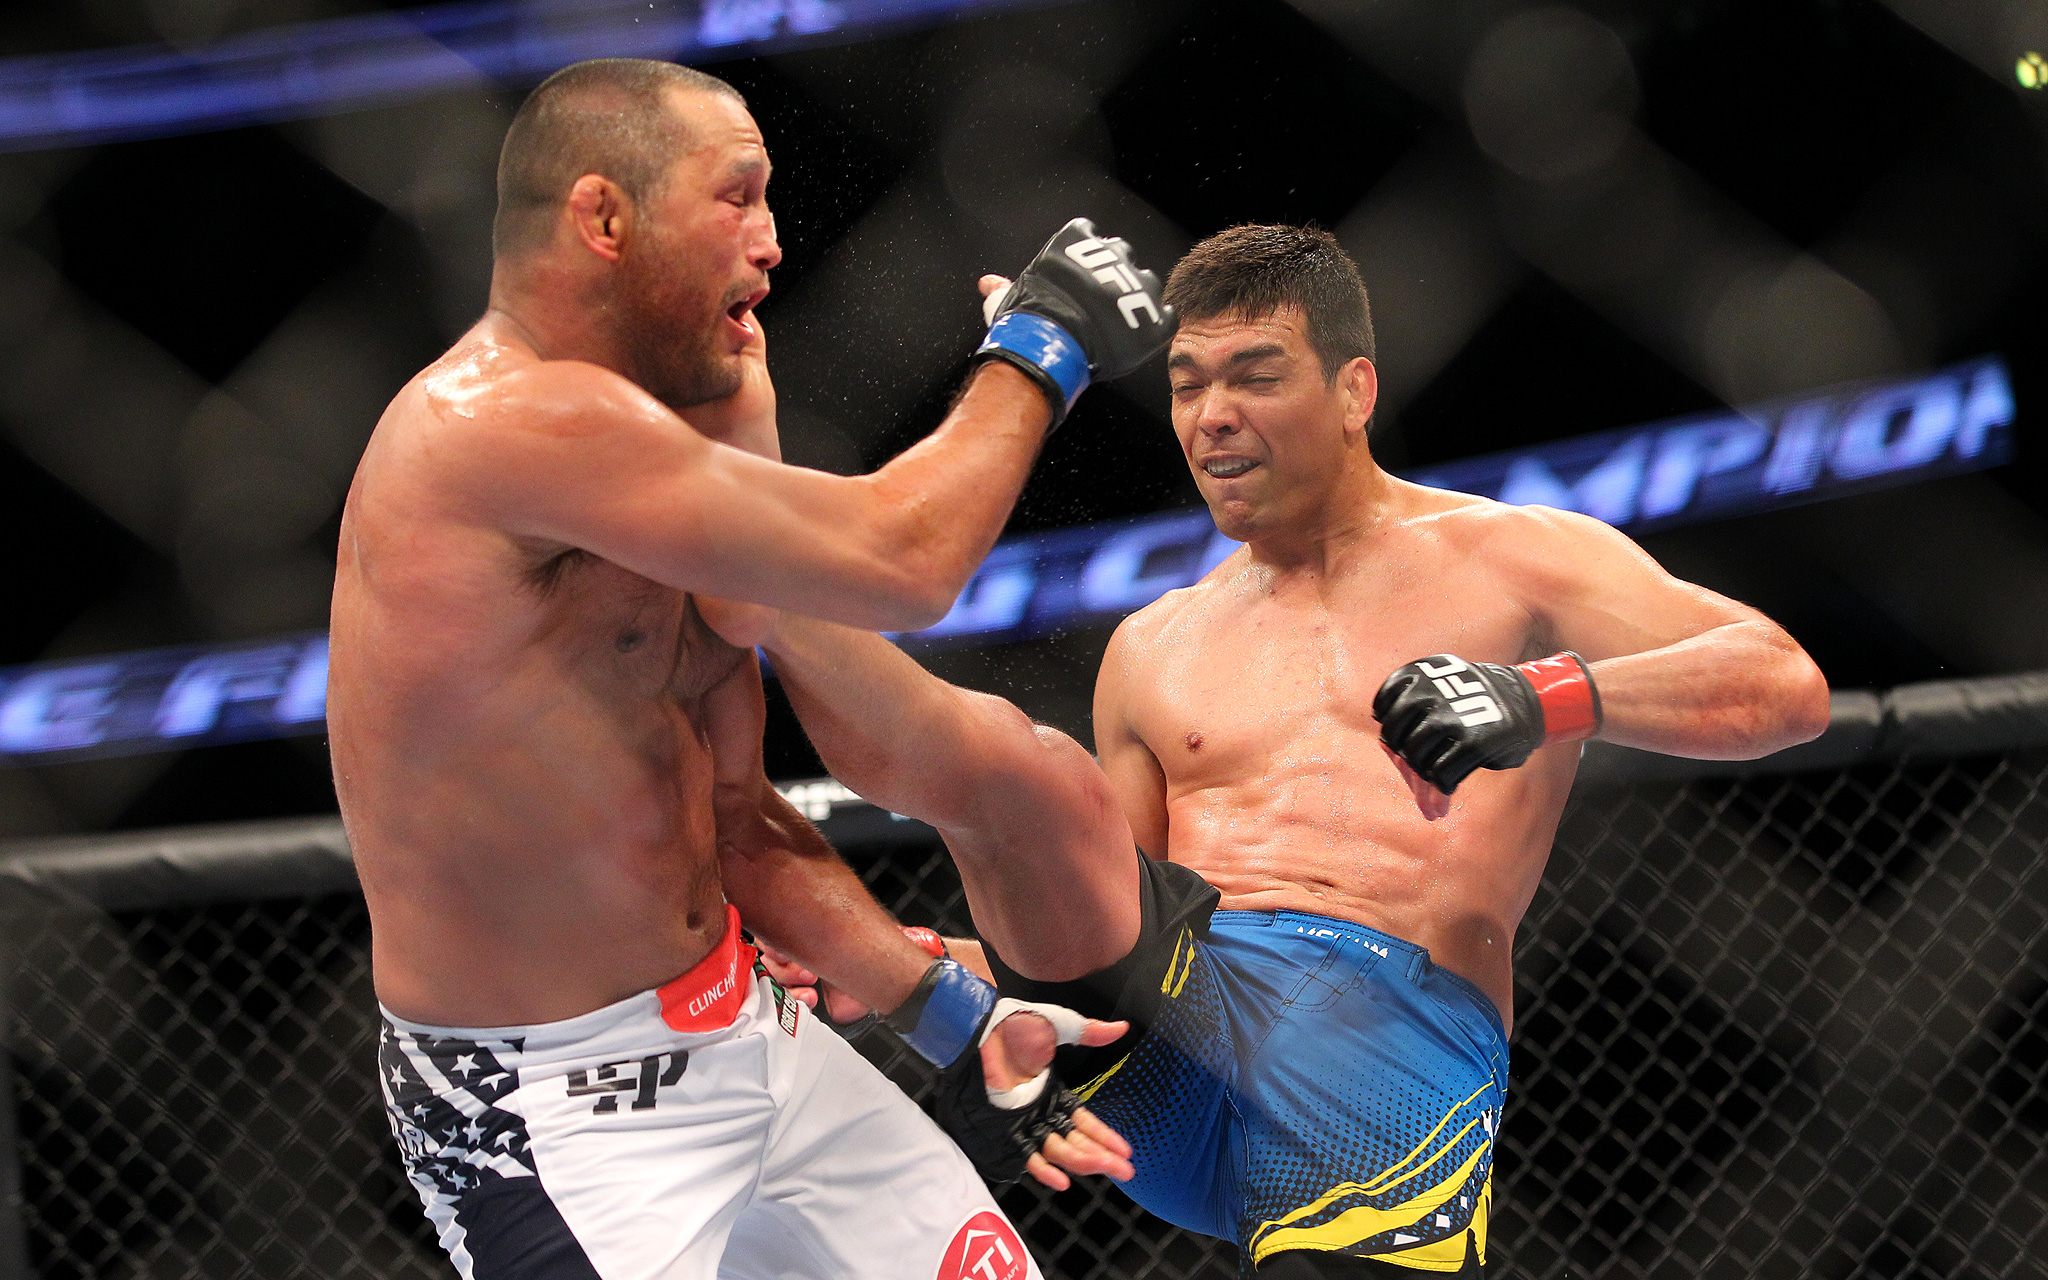 Lyoto Machida and Dan Henderson